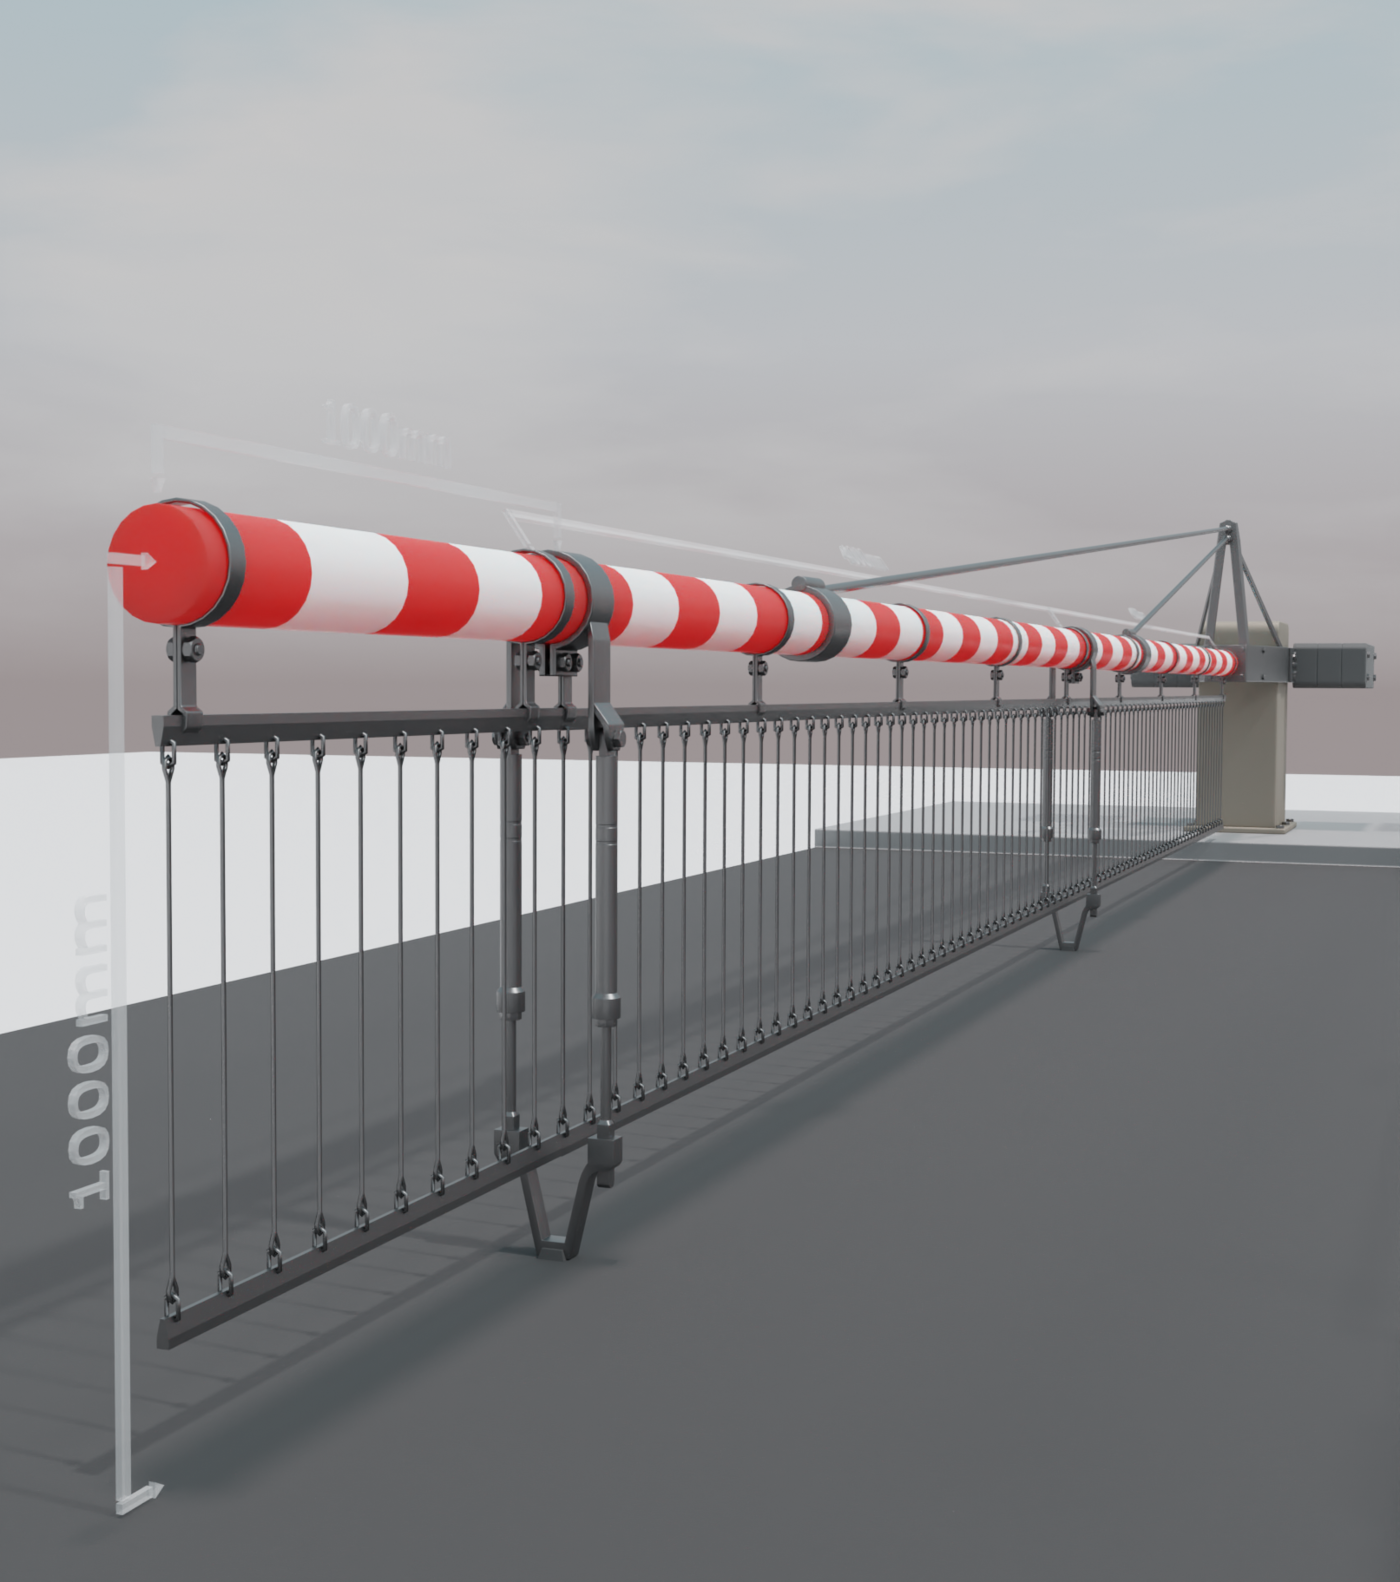 Railway Barrier Construction Set (High-Poly) Overview (Blender-2.91-Cycles-Render-Engine)